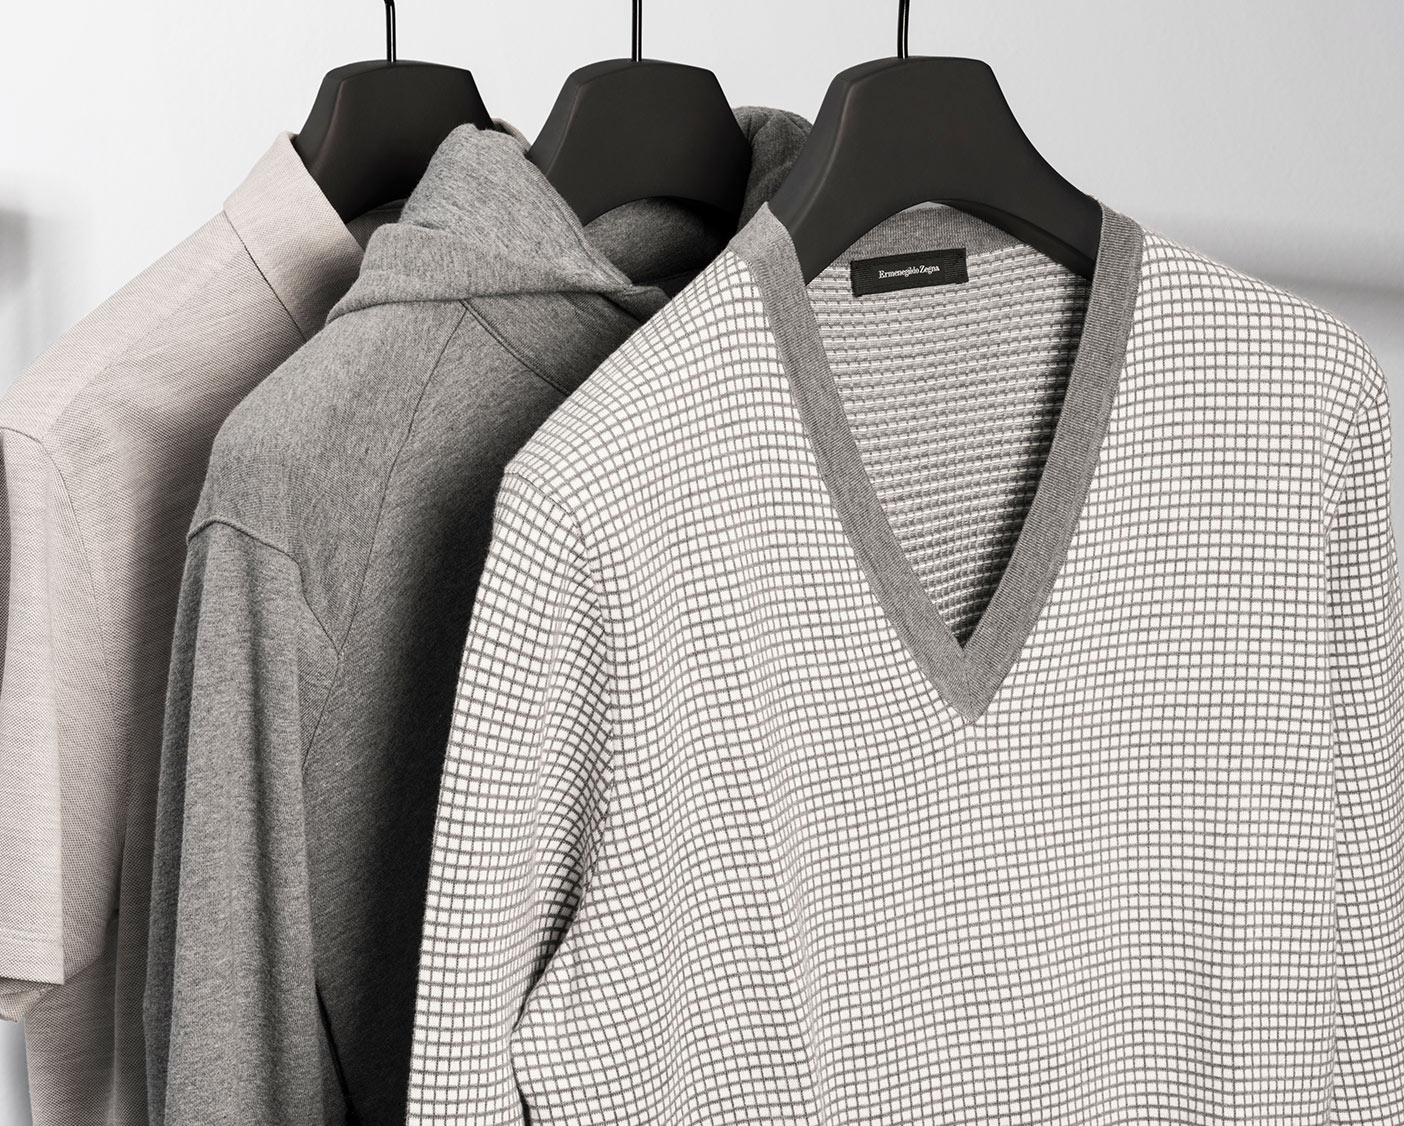 Men's polos and knitwear on sale, spring summer 2016 | Zegna